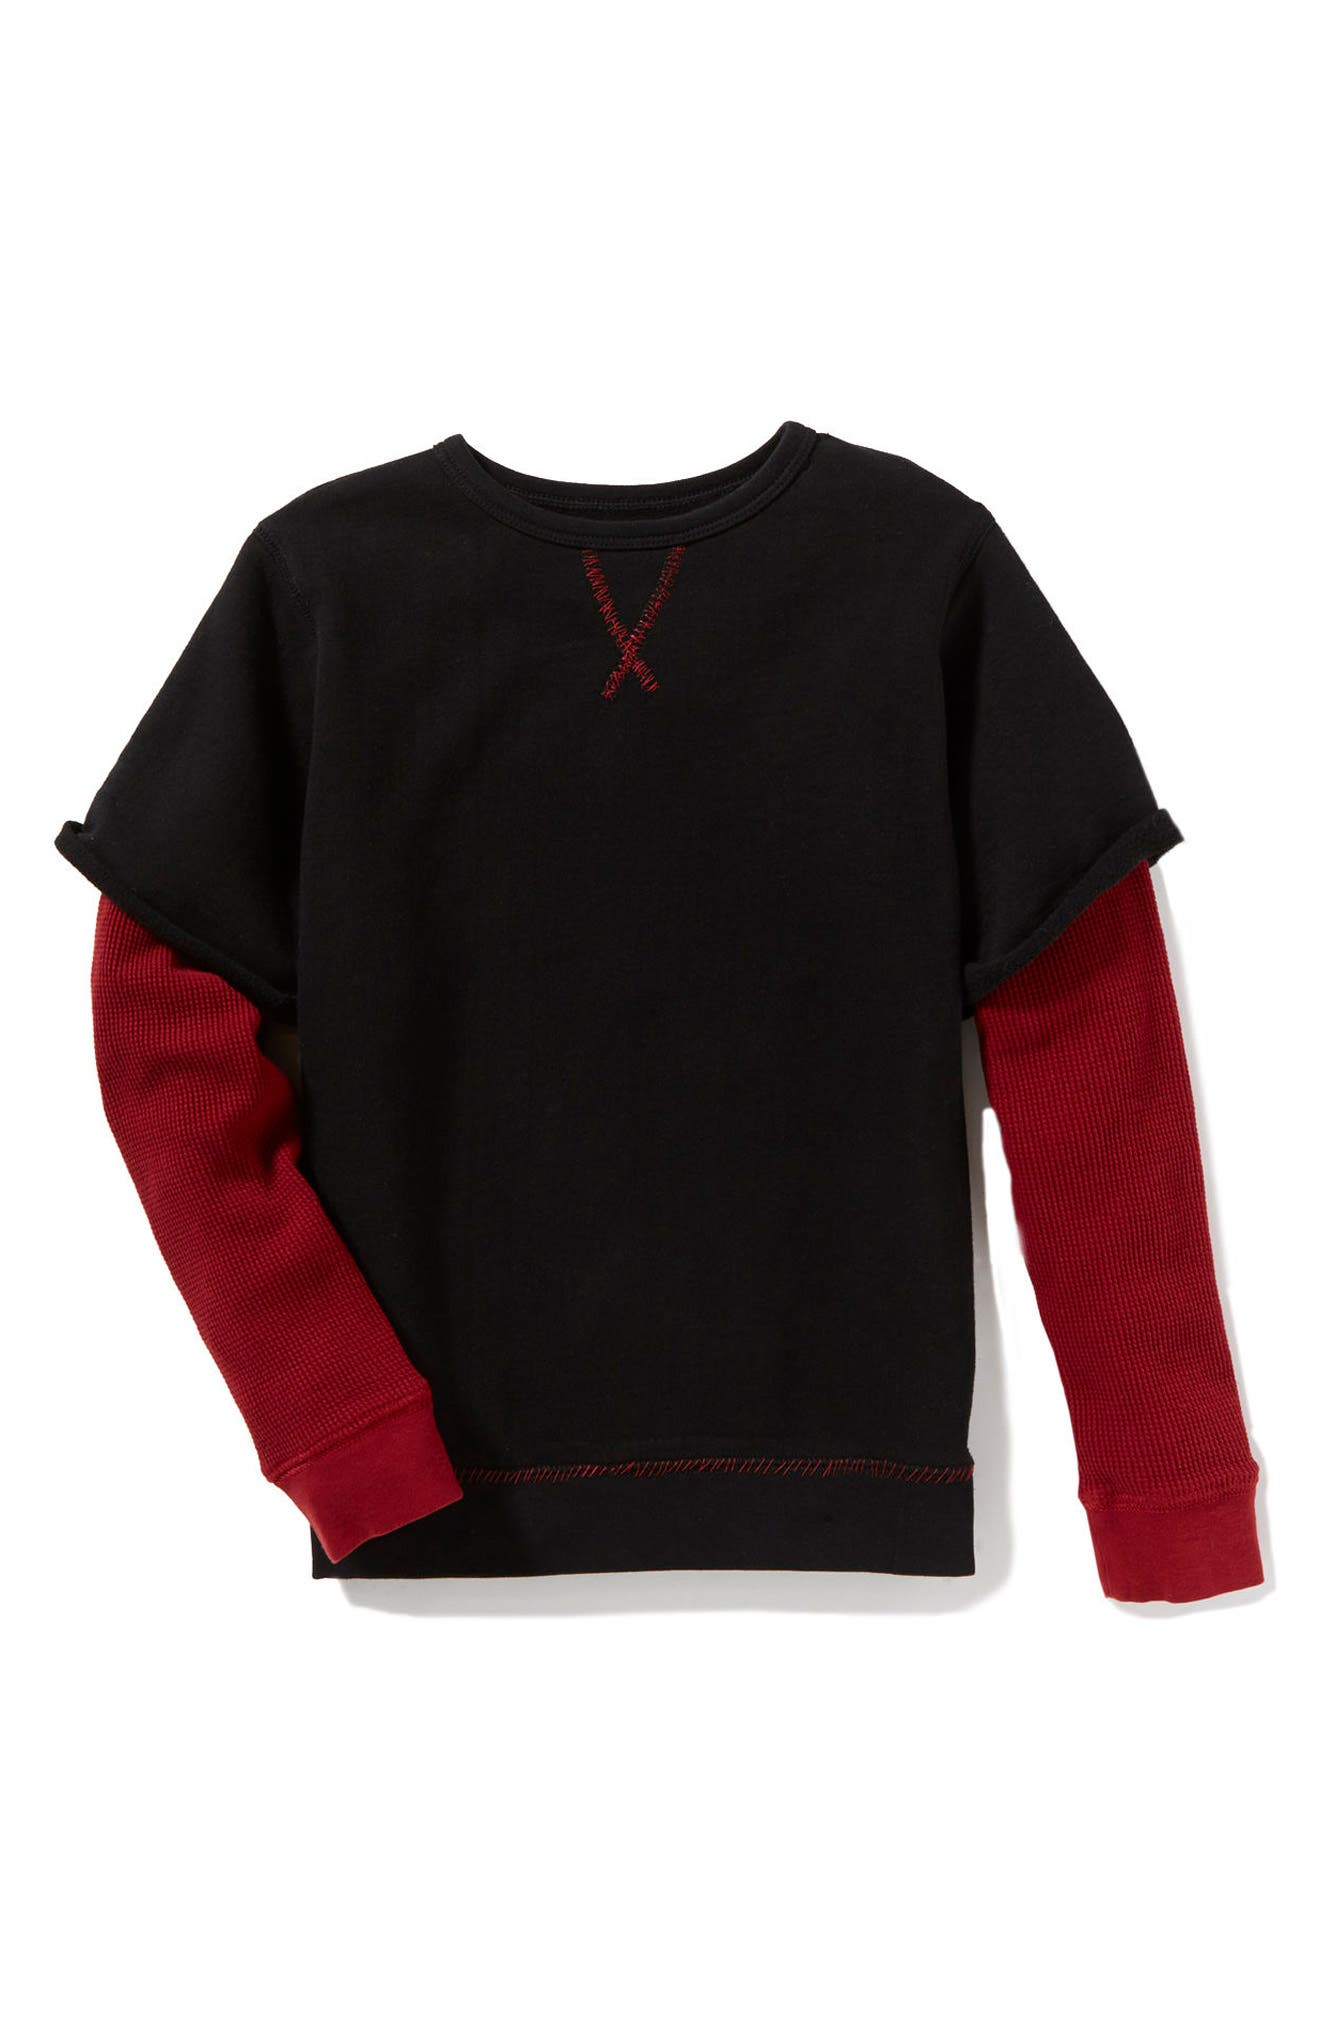 Axel Layer Sweatshirt,                             Main thumbnail 1, color,                             001